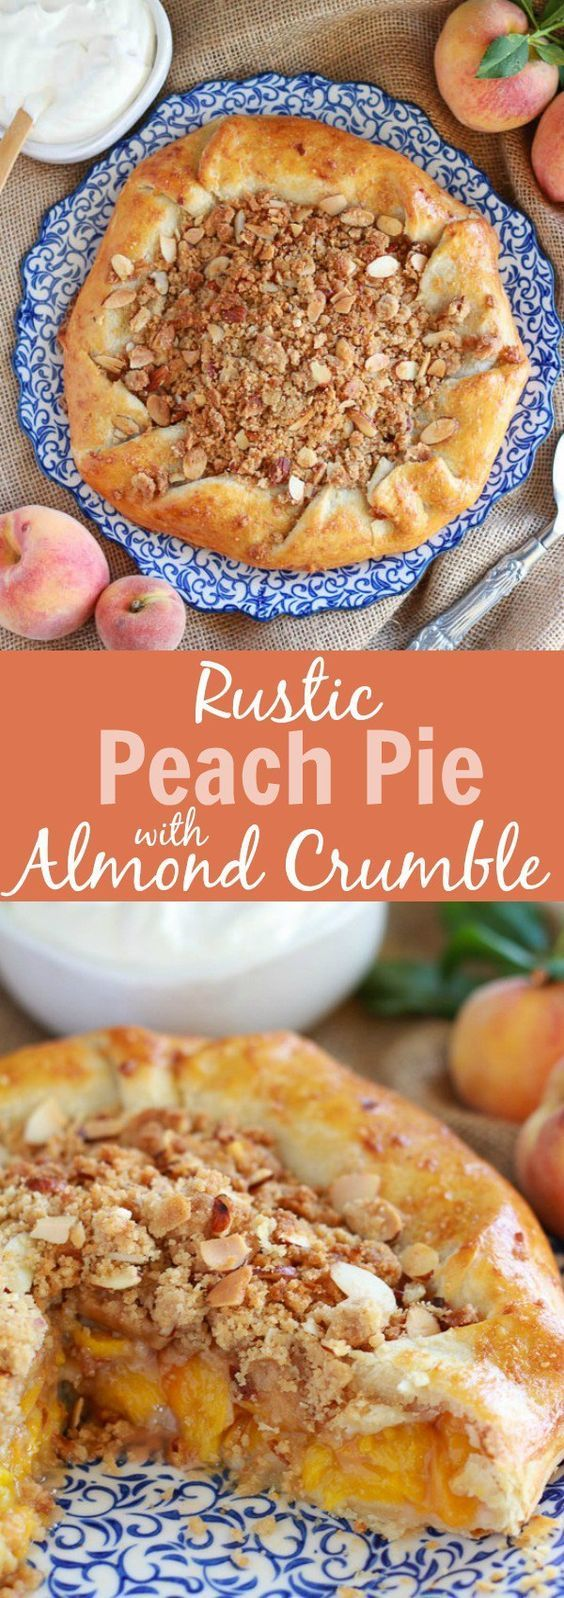 Peach Galette with Almond Crumble Topping